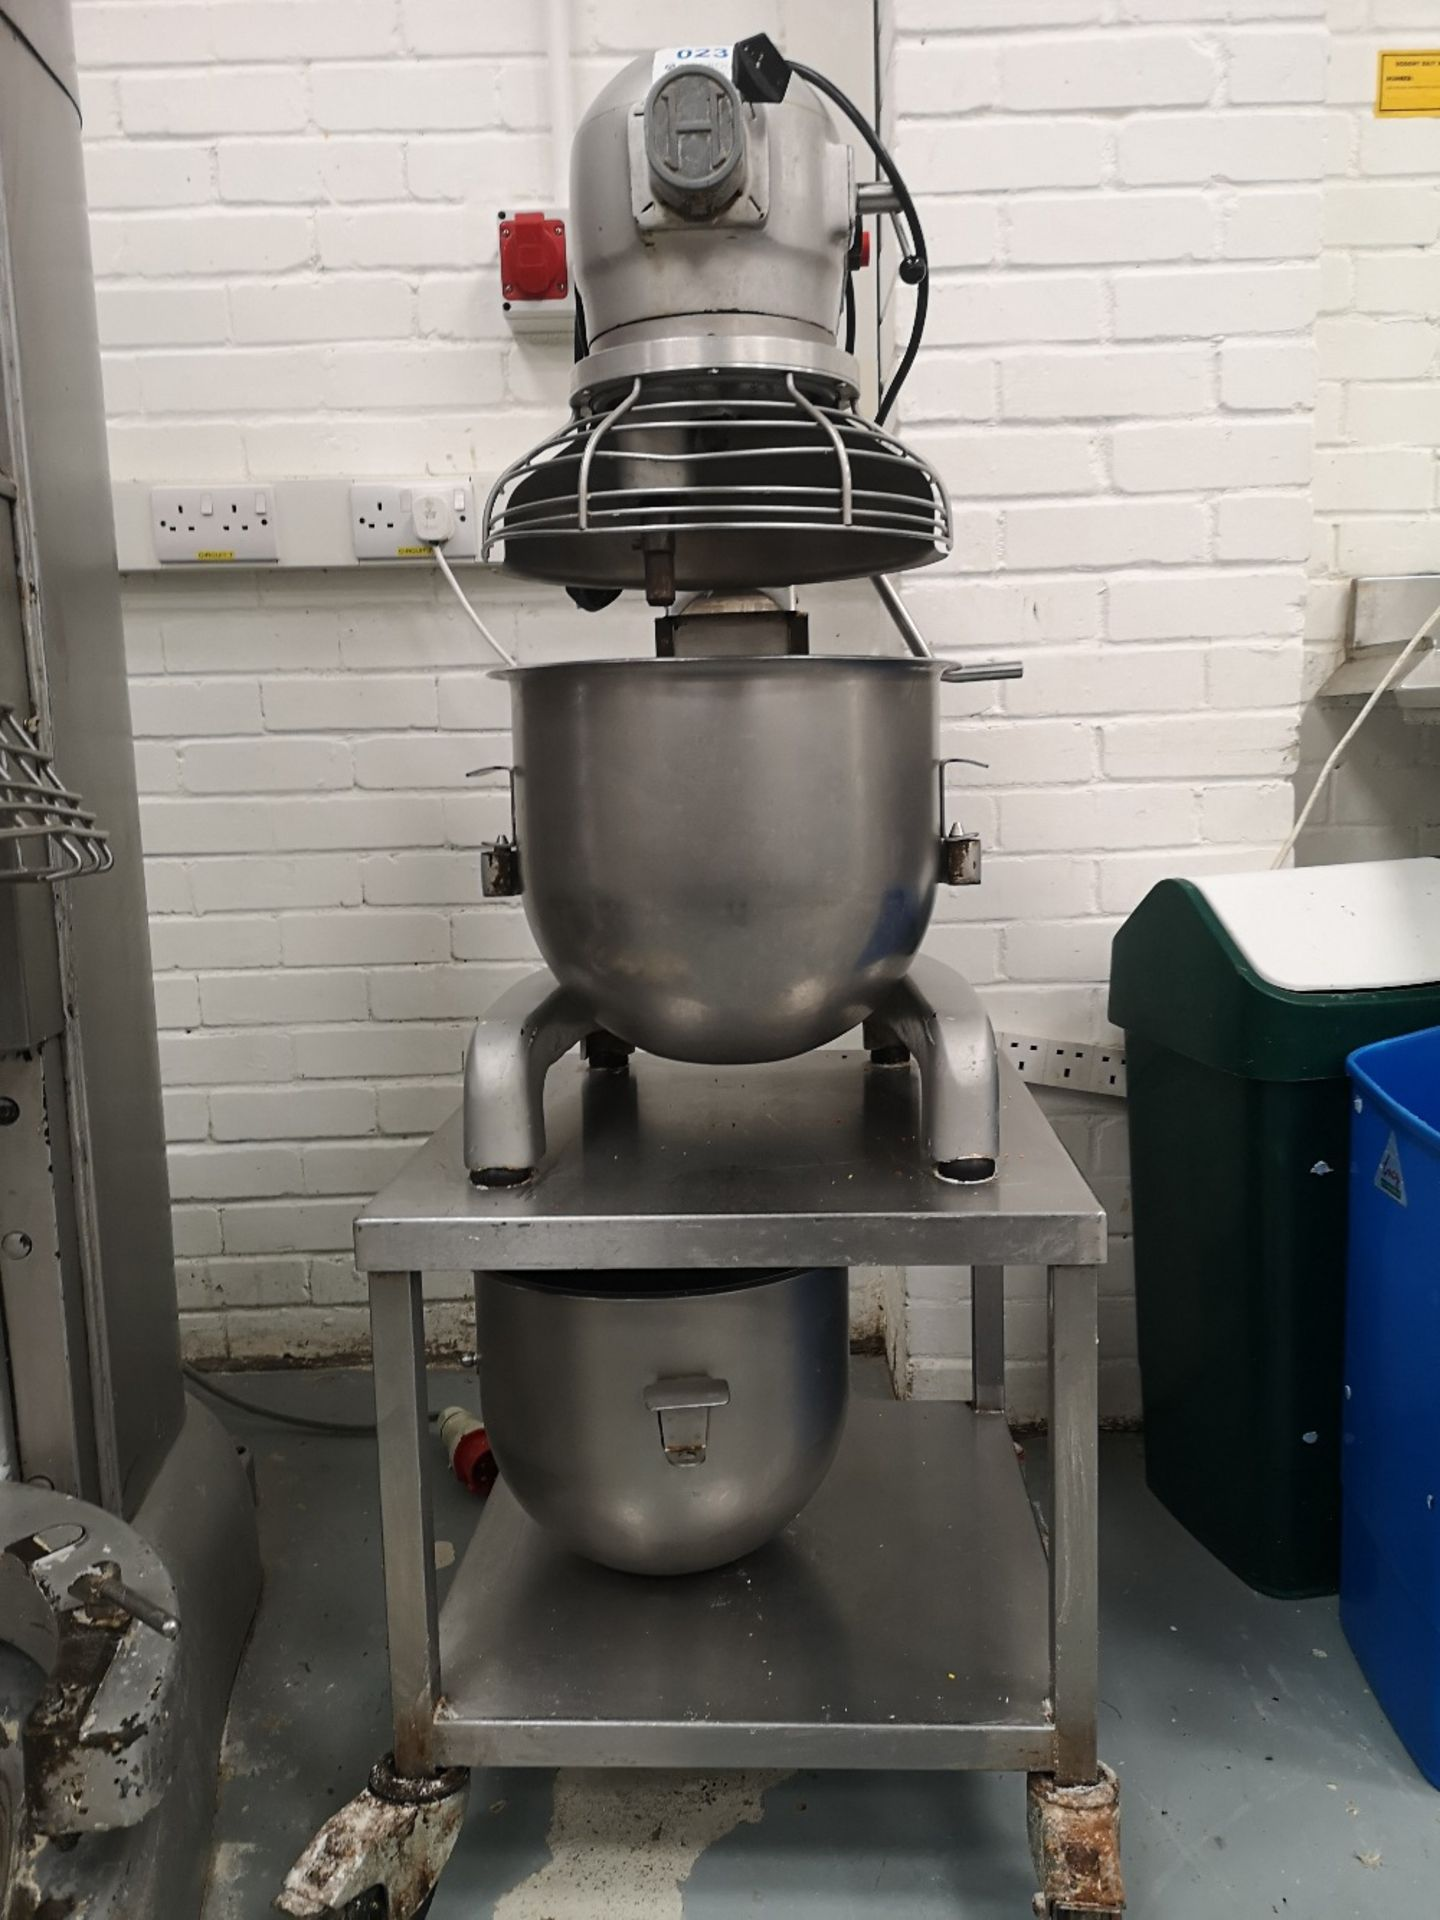 Hobart 20 QRT Planetary Mixer on Stainless Steel Mobile Stand with (2) Mixing Bowls - Image 3 of 6